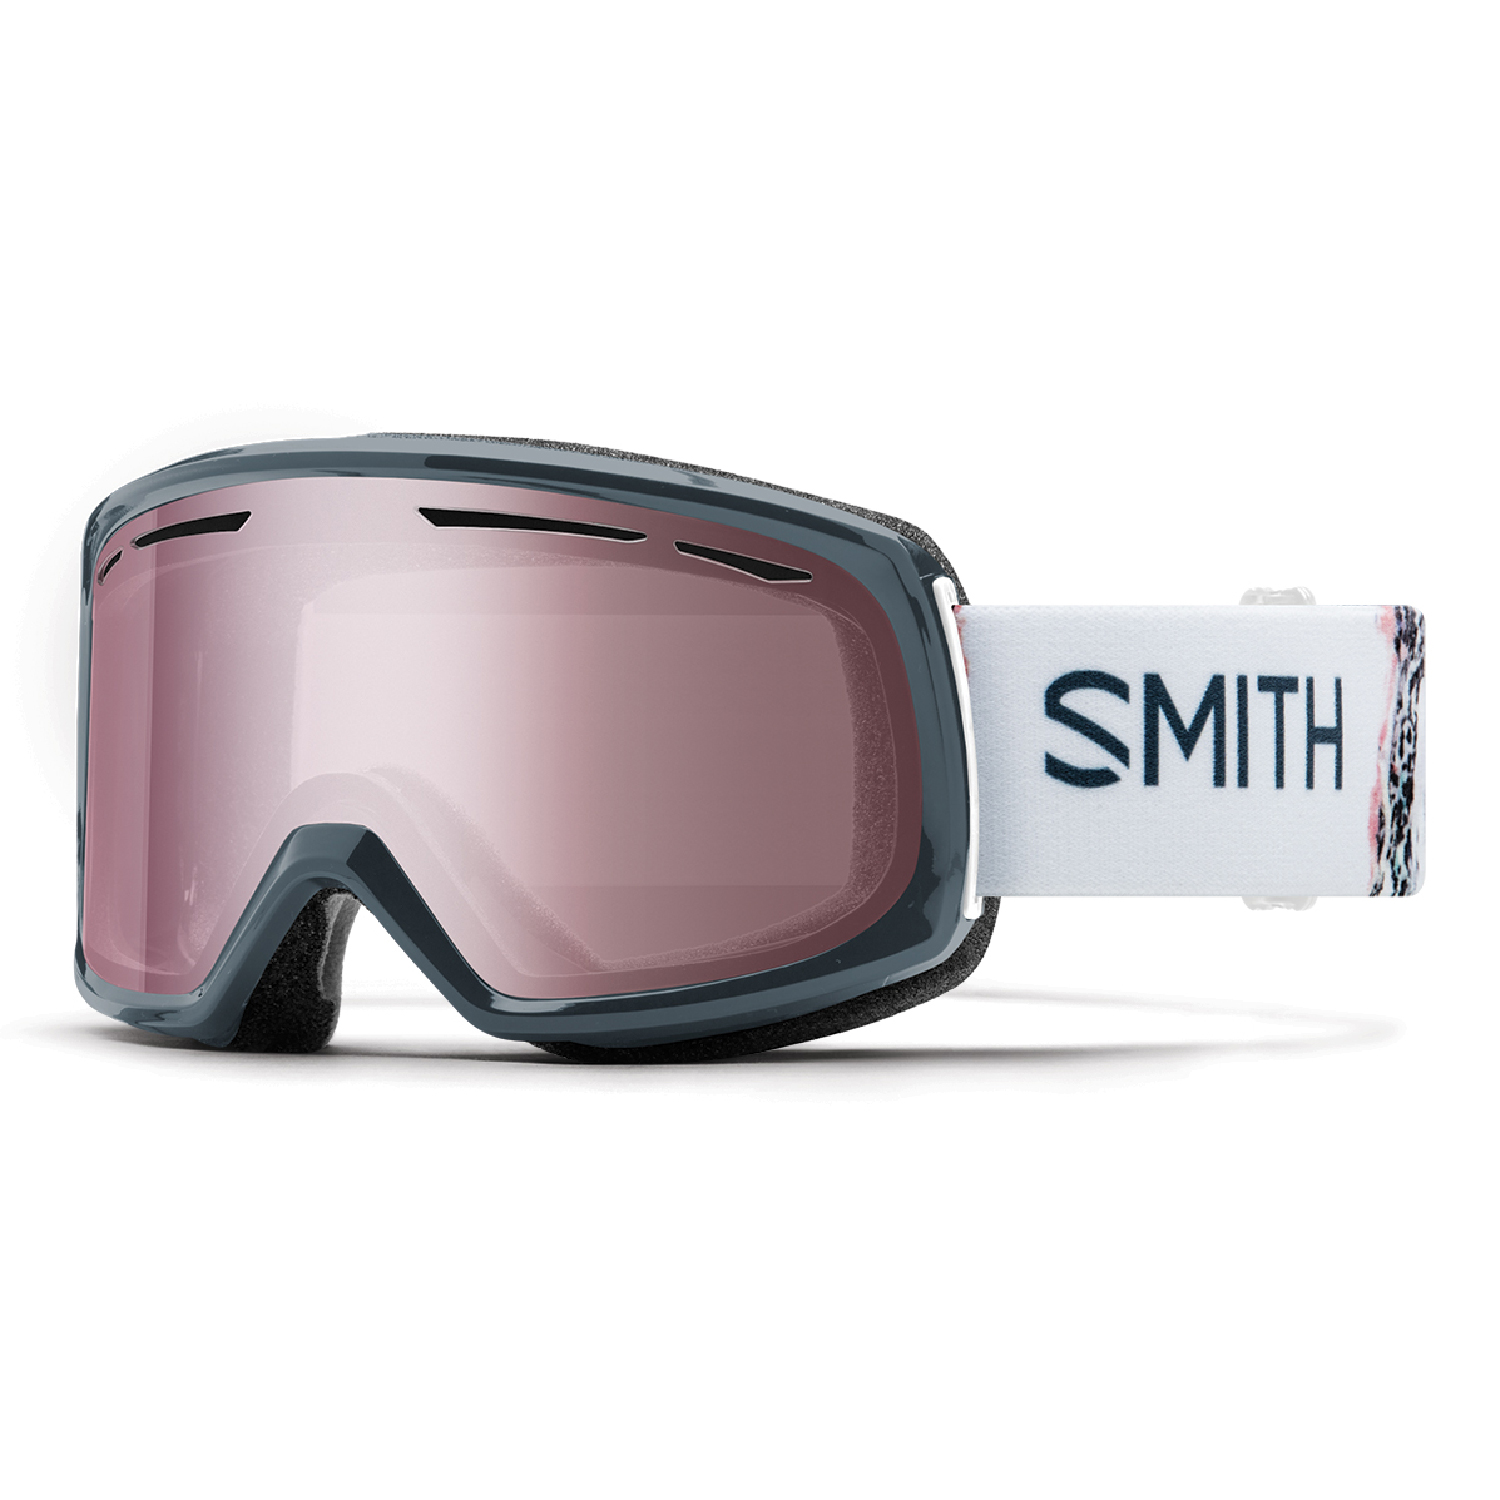 Smith Optics 2019 Drift (Thunder Composite Ignitor Mirror) Women's Snowboard Goggles by